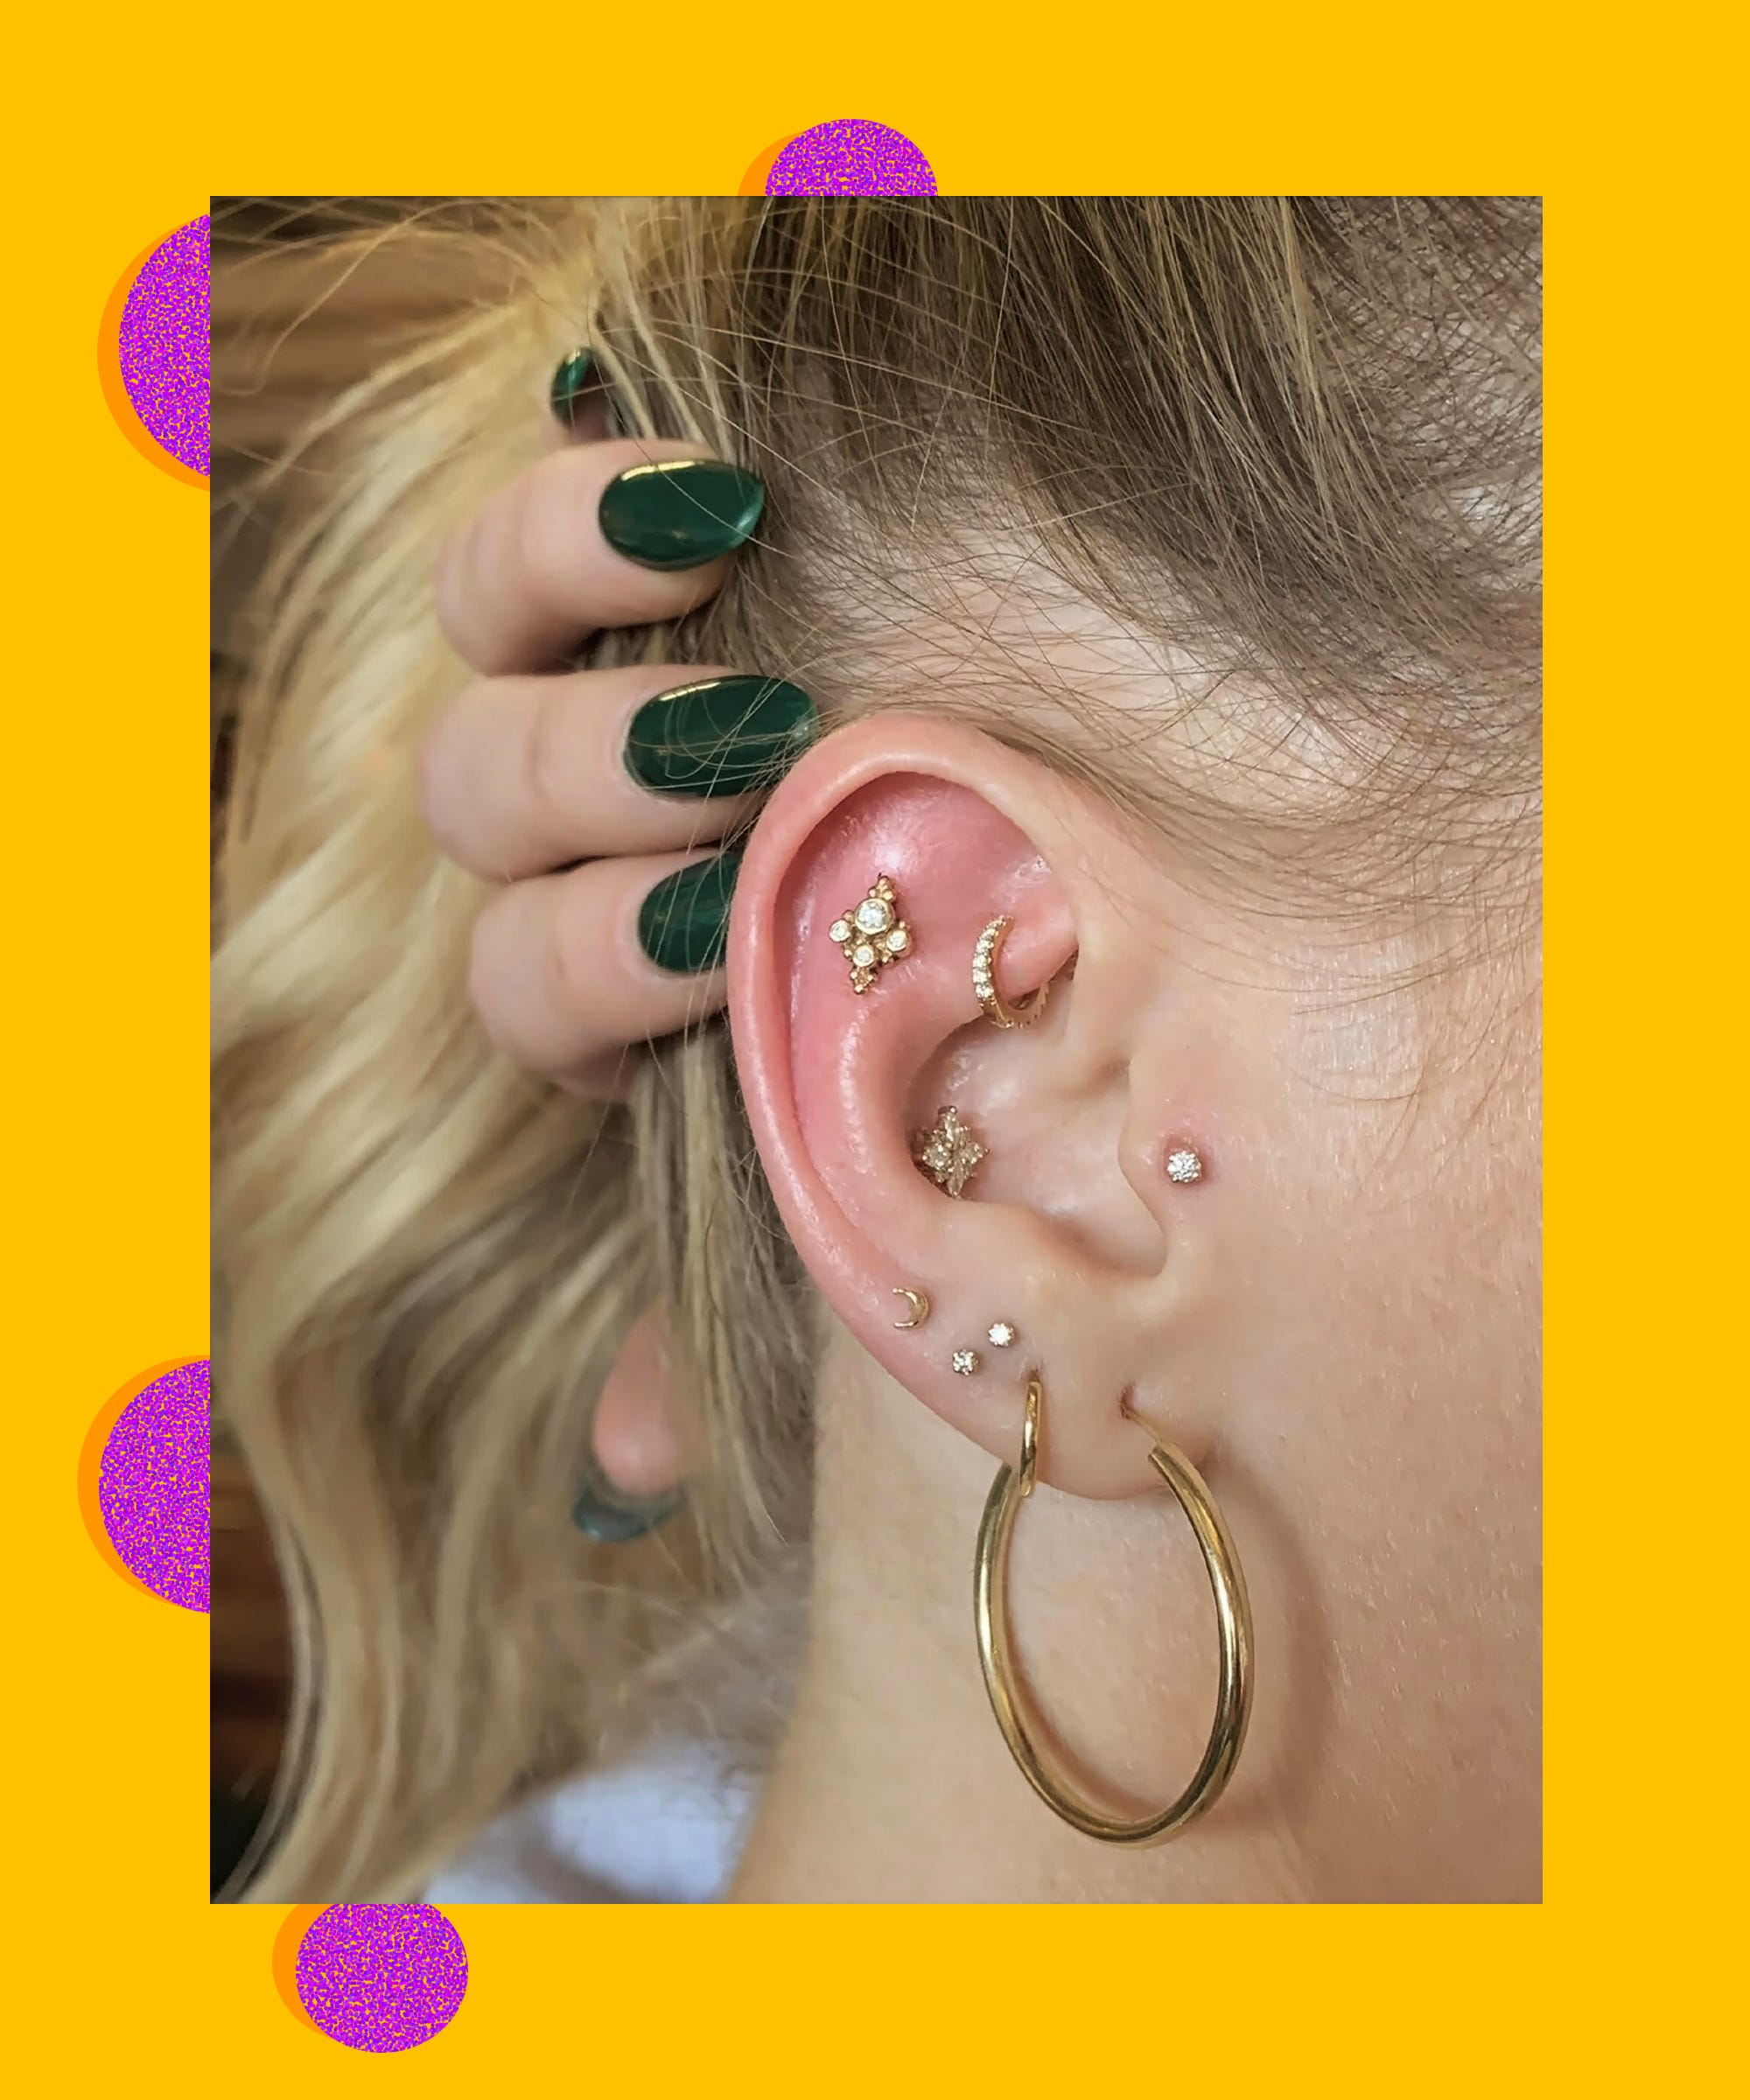 New Ear Piercing Trend In La For Multiple Earrings 2018